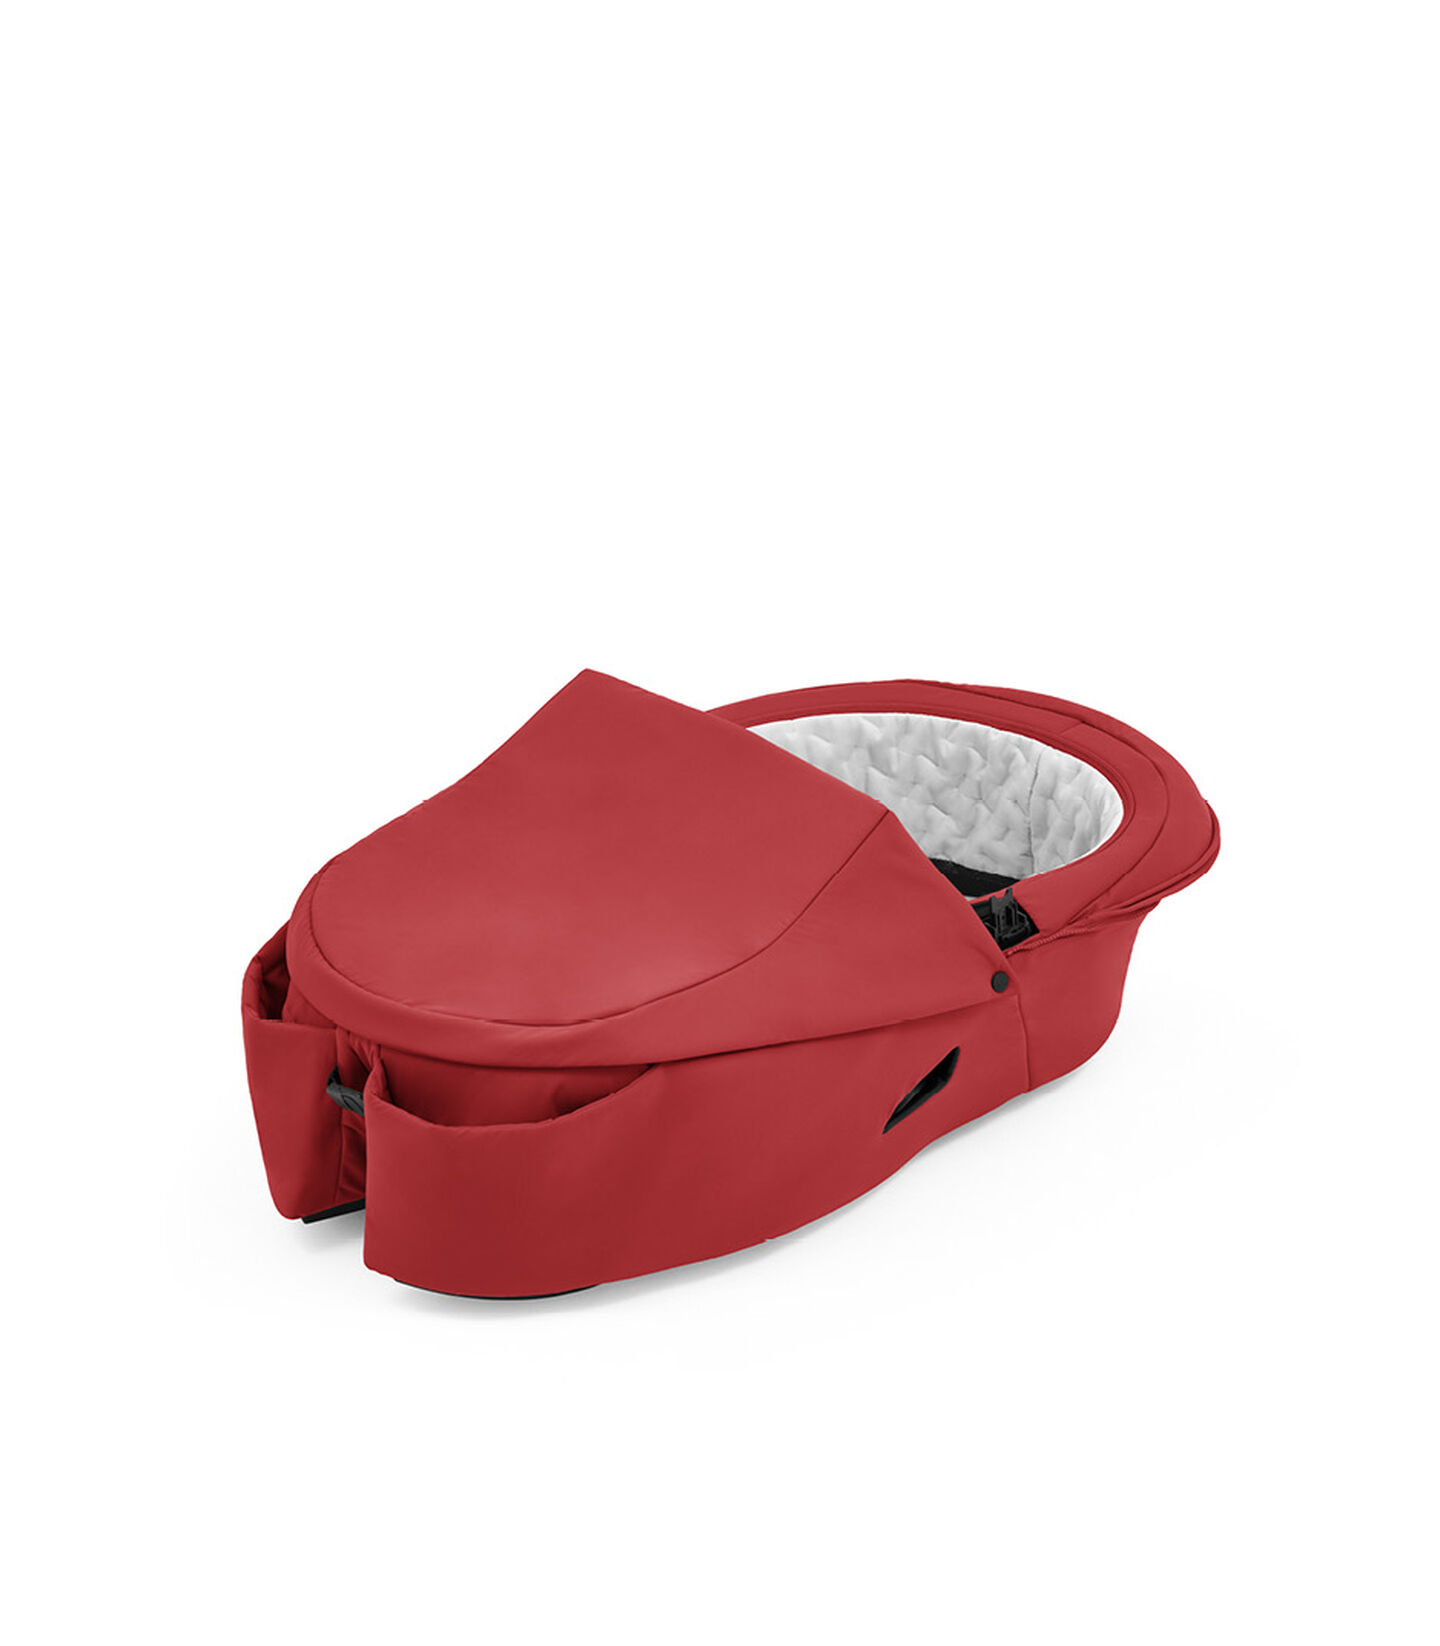 Stokke® Xplory® X Ruby Red Carry Cot, no canopy. view 2